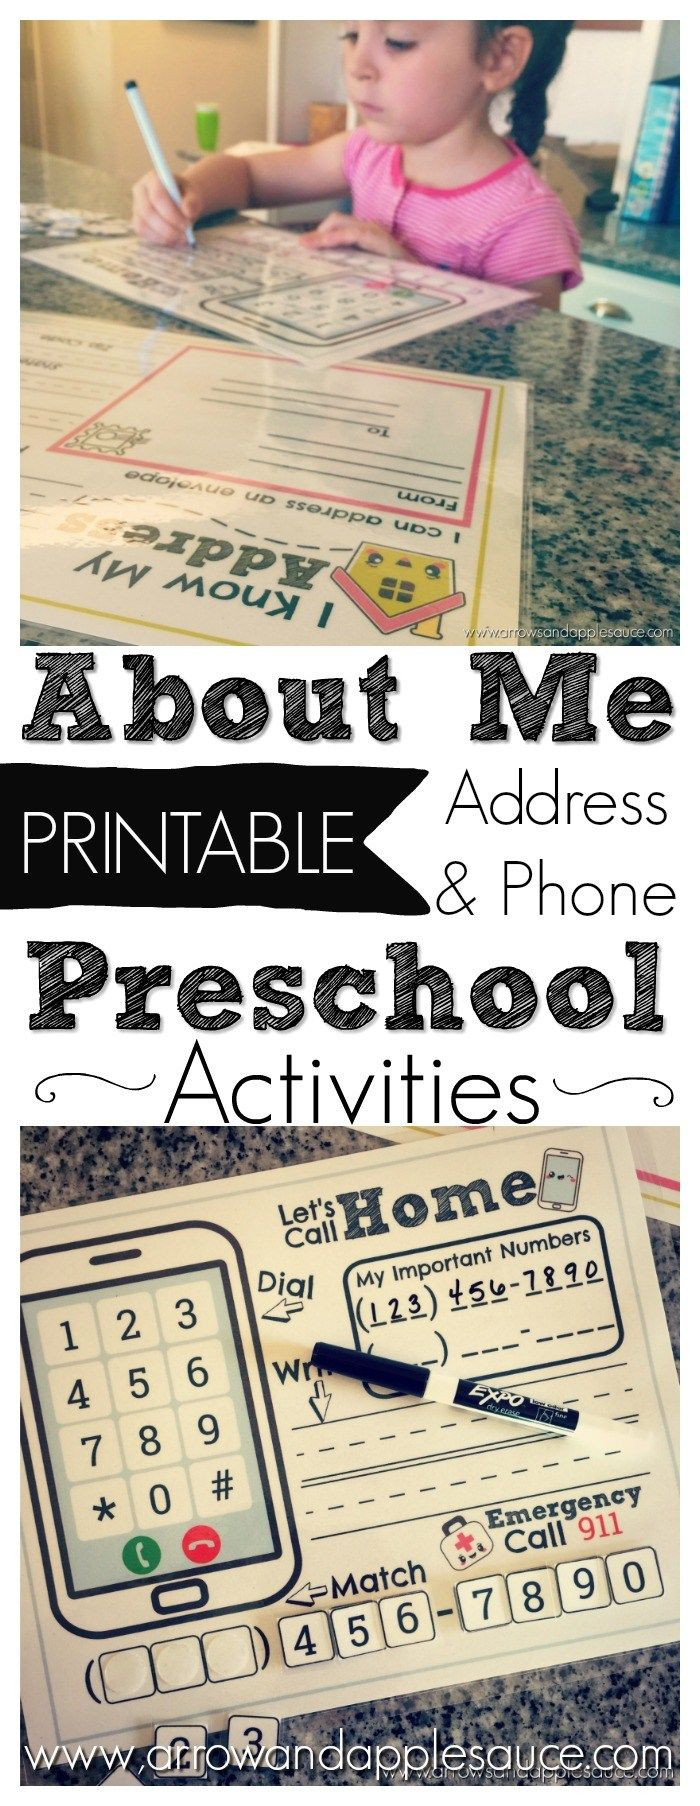 Address And Phone Number Activities Free About Me Printable Preschool Learning Preschool Activities Preschool Printables [ 1806 x 700 Pixel ]